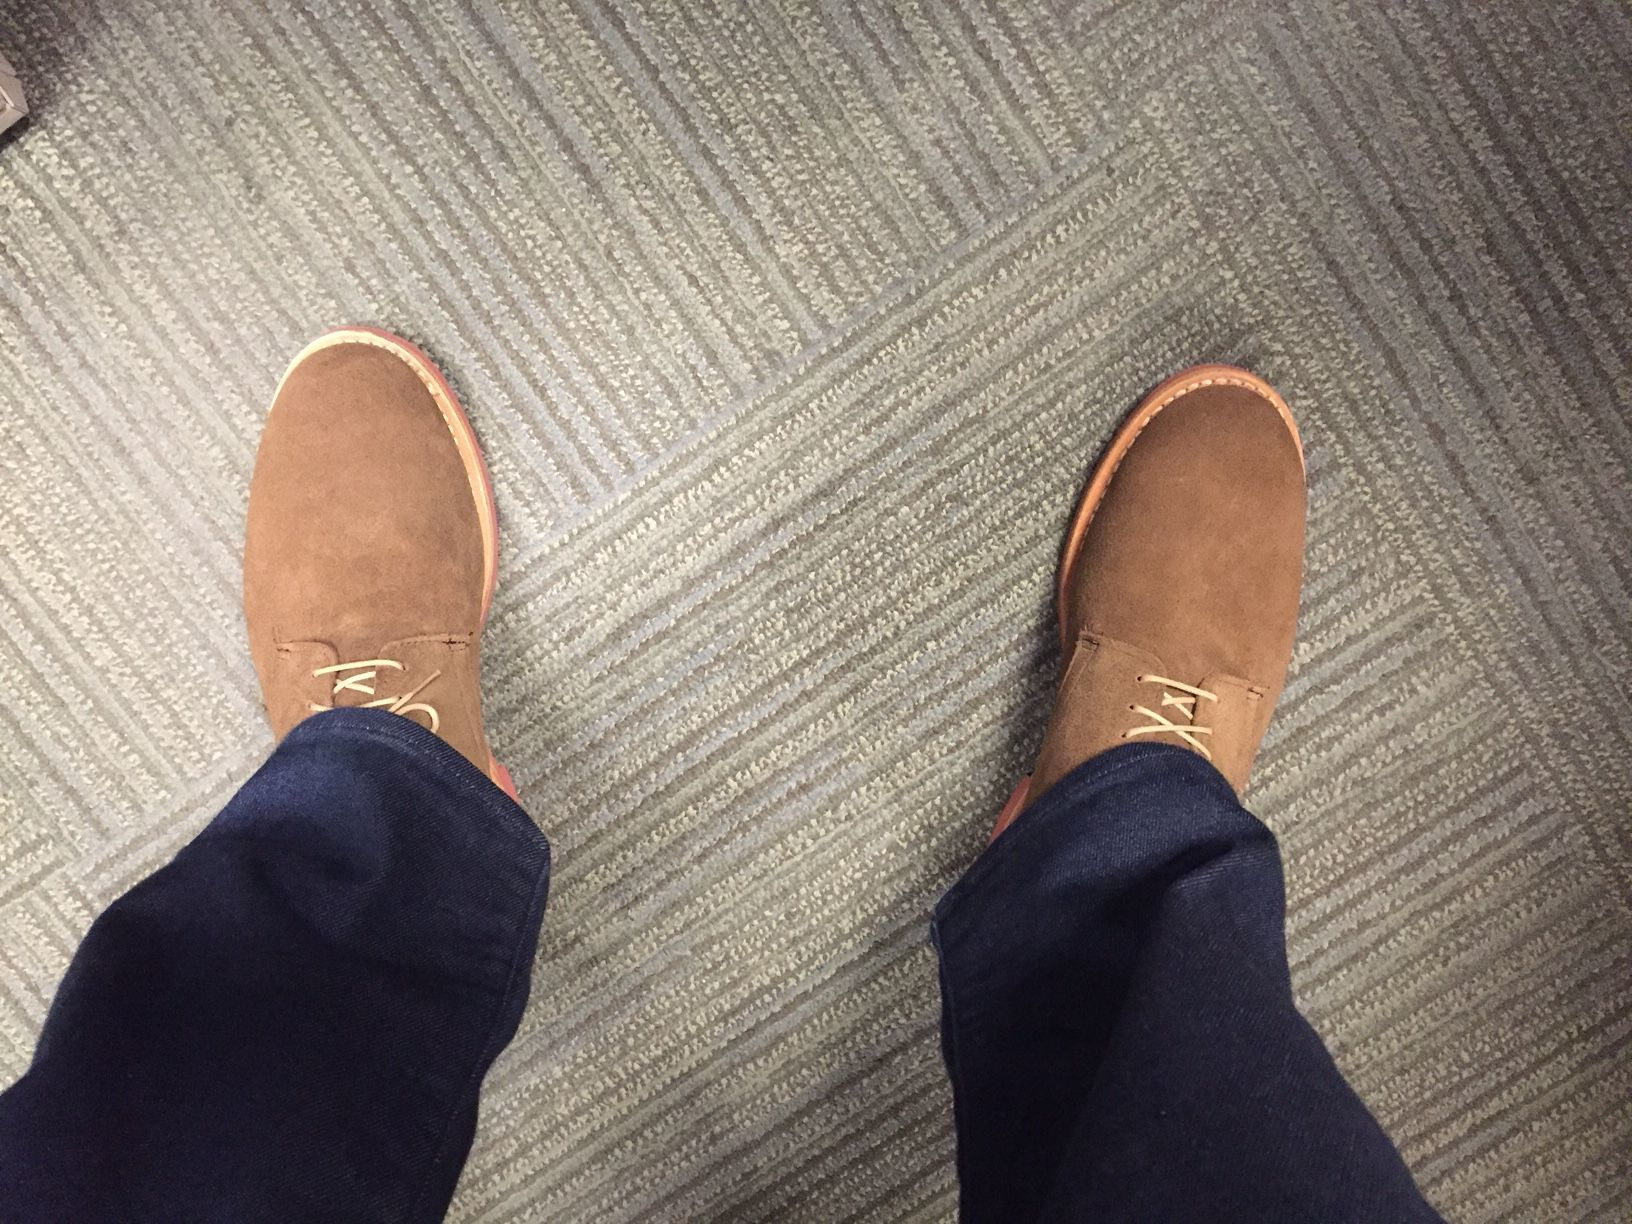 Firefox's photos in Allen Edmonds Appreciation Thread 2016 - News, Pictures, Sizing, Accessories, Clothing, etc